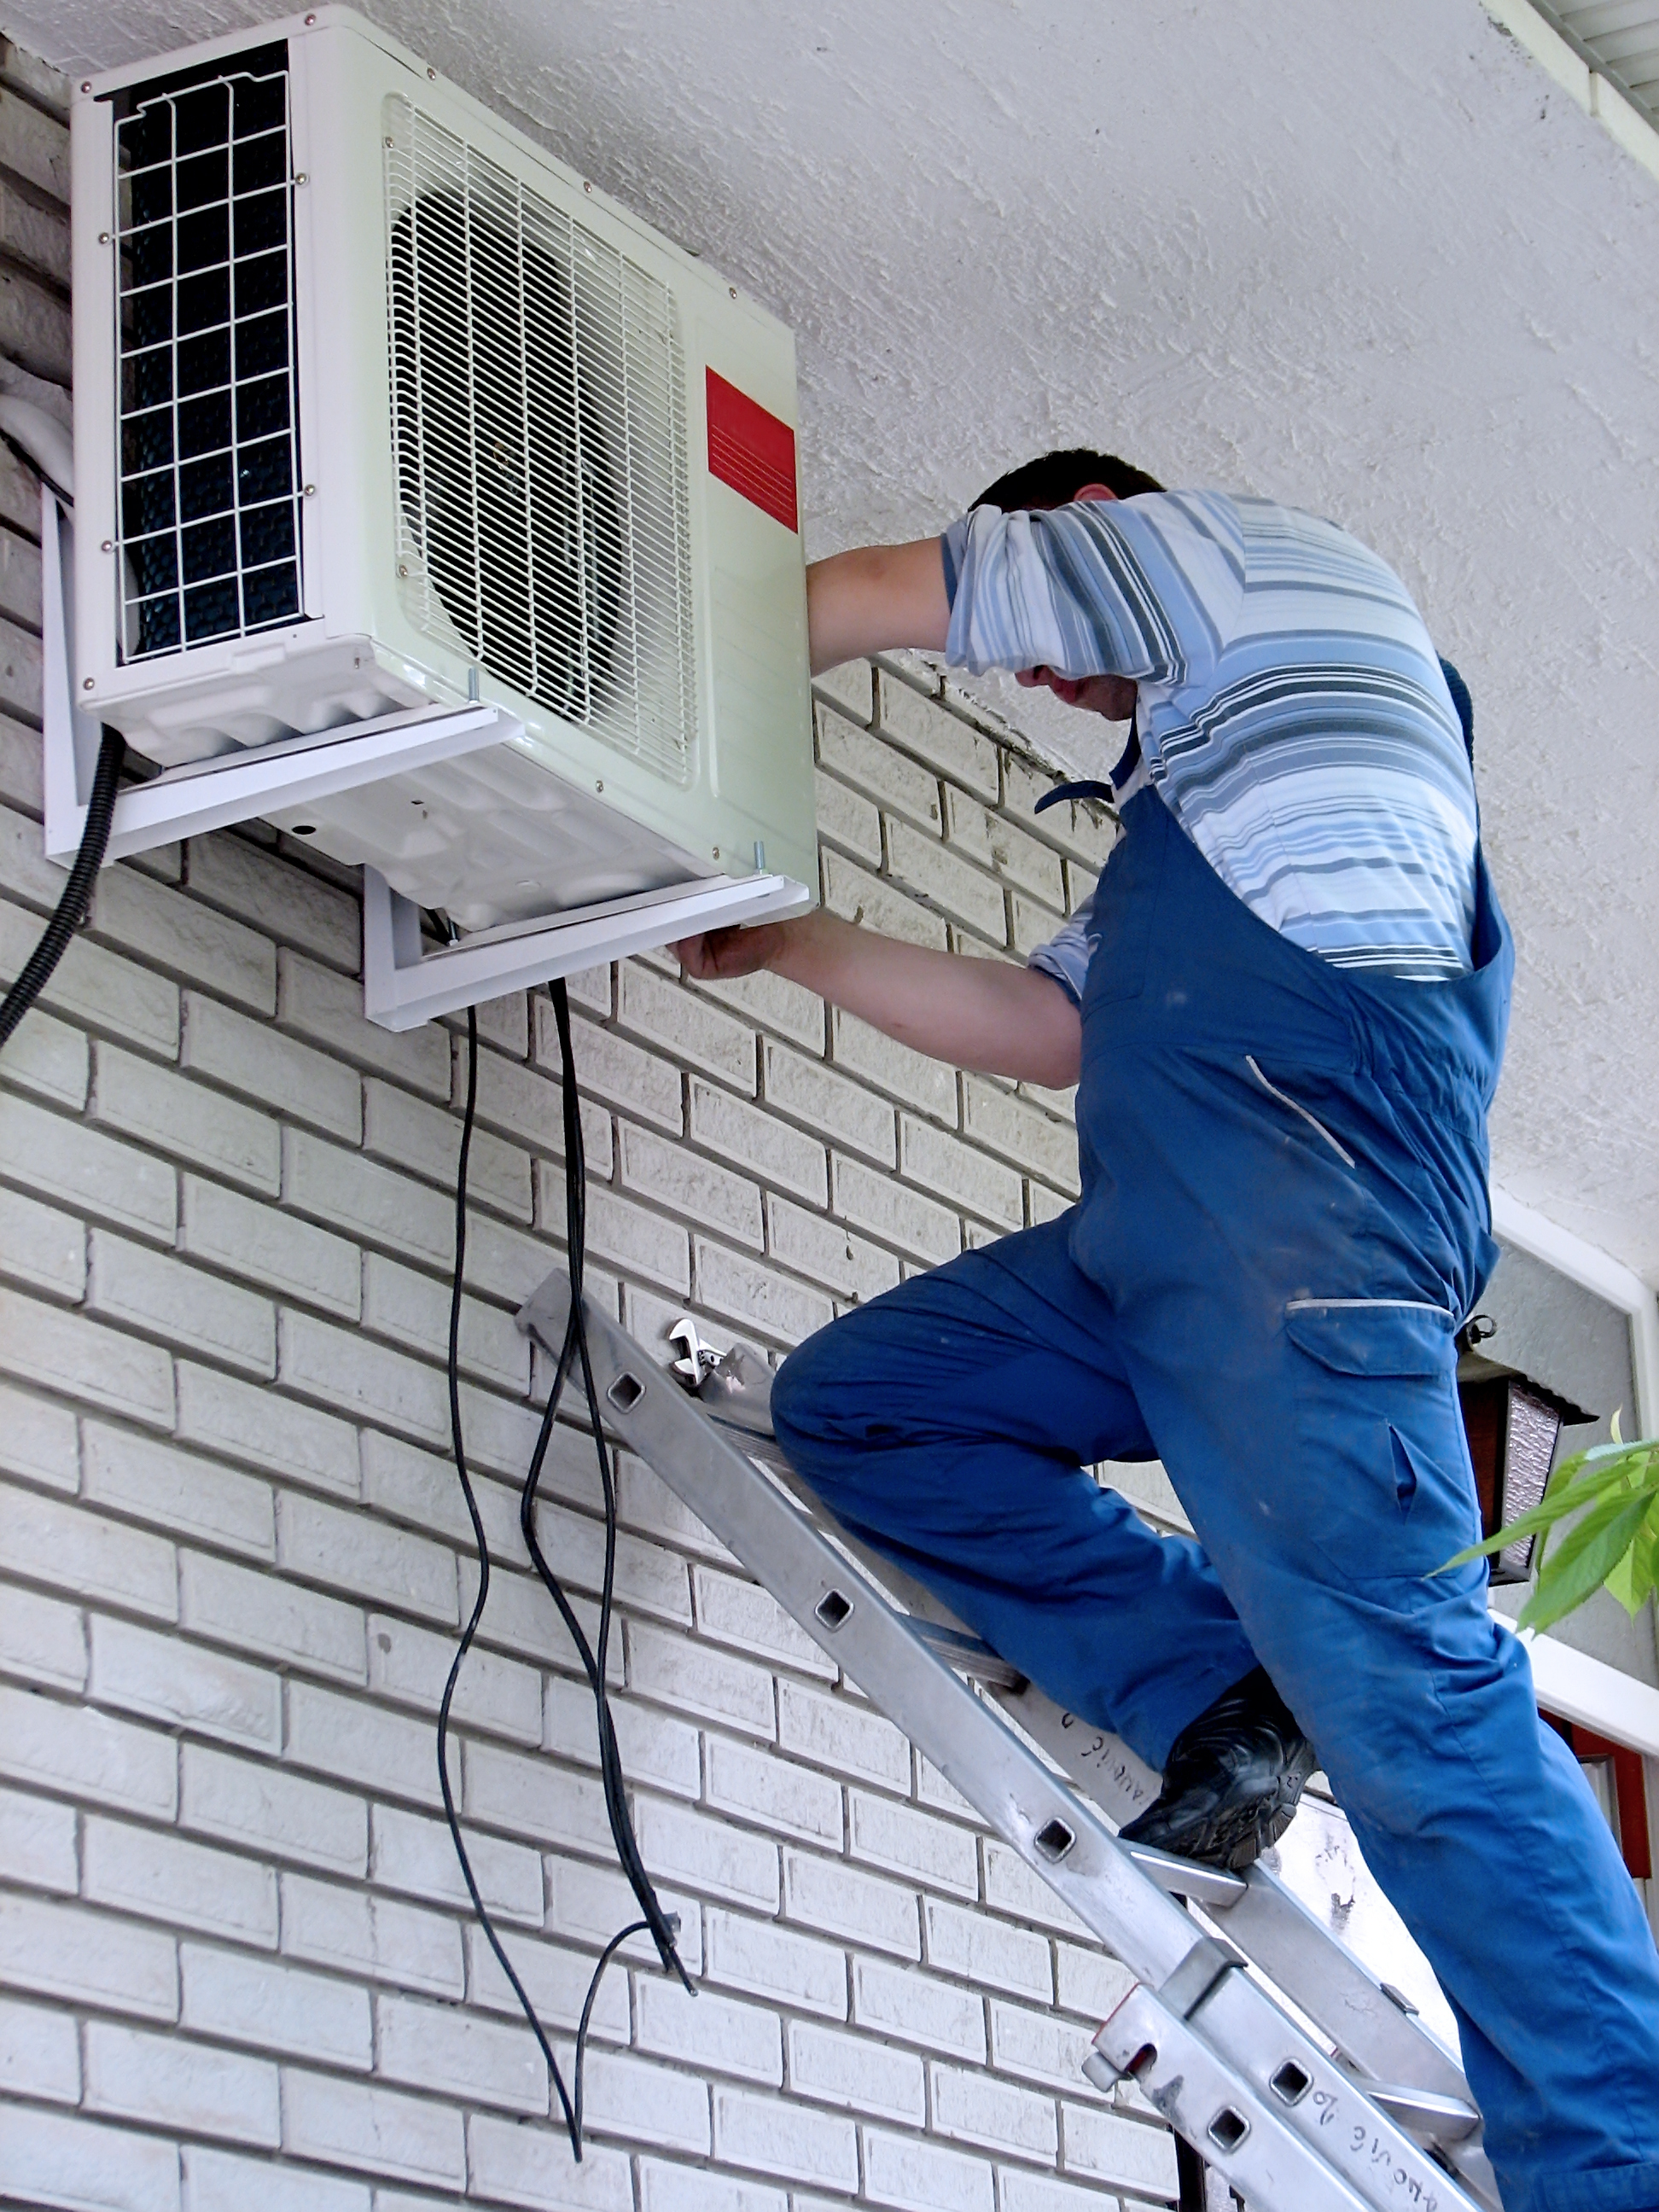 Helpful Guidance for Maintaining an Air Conditioner